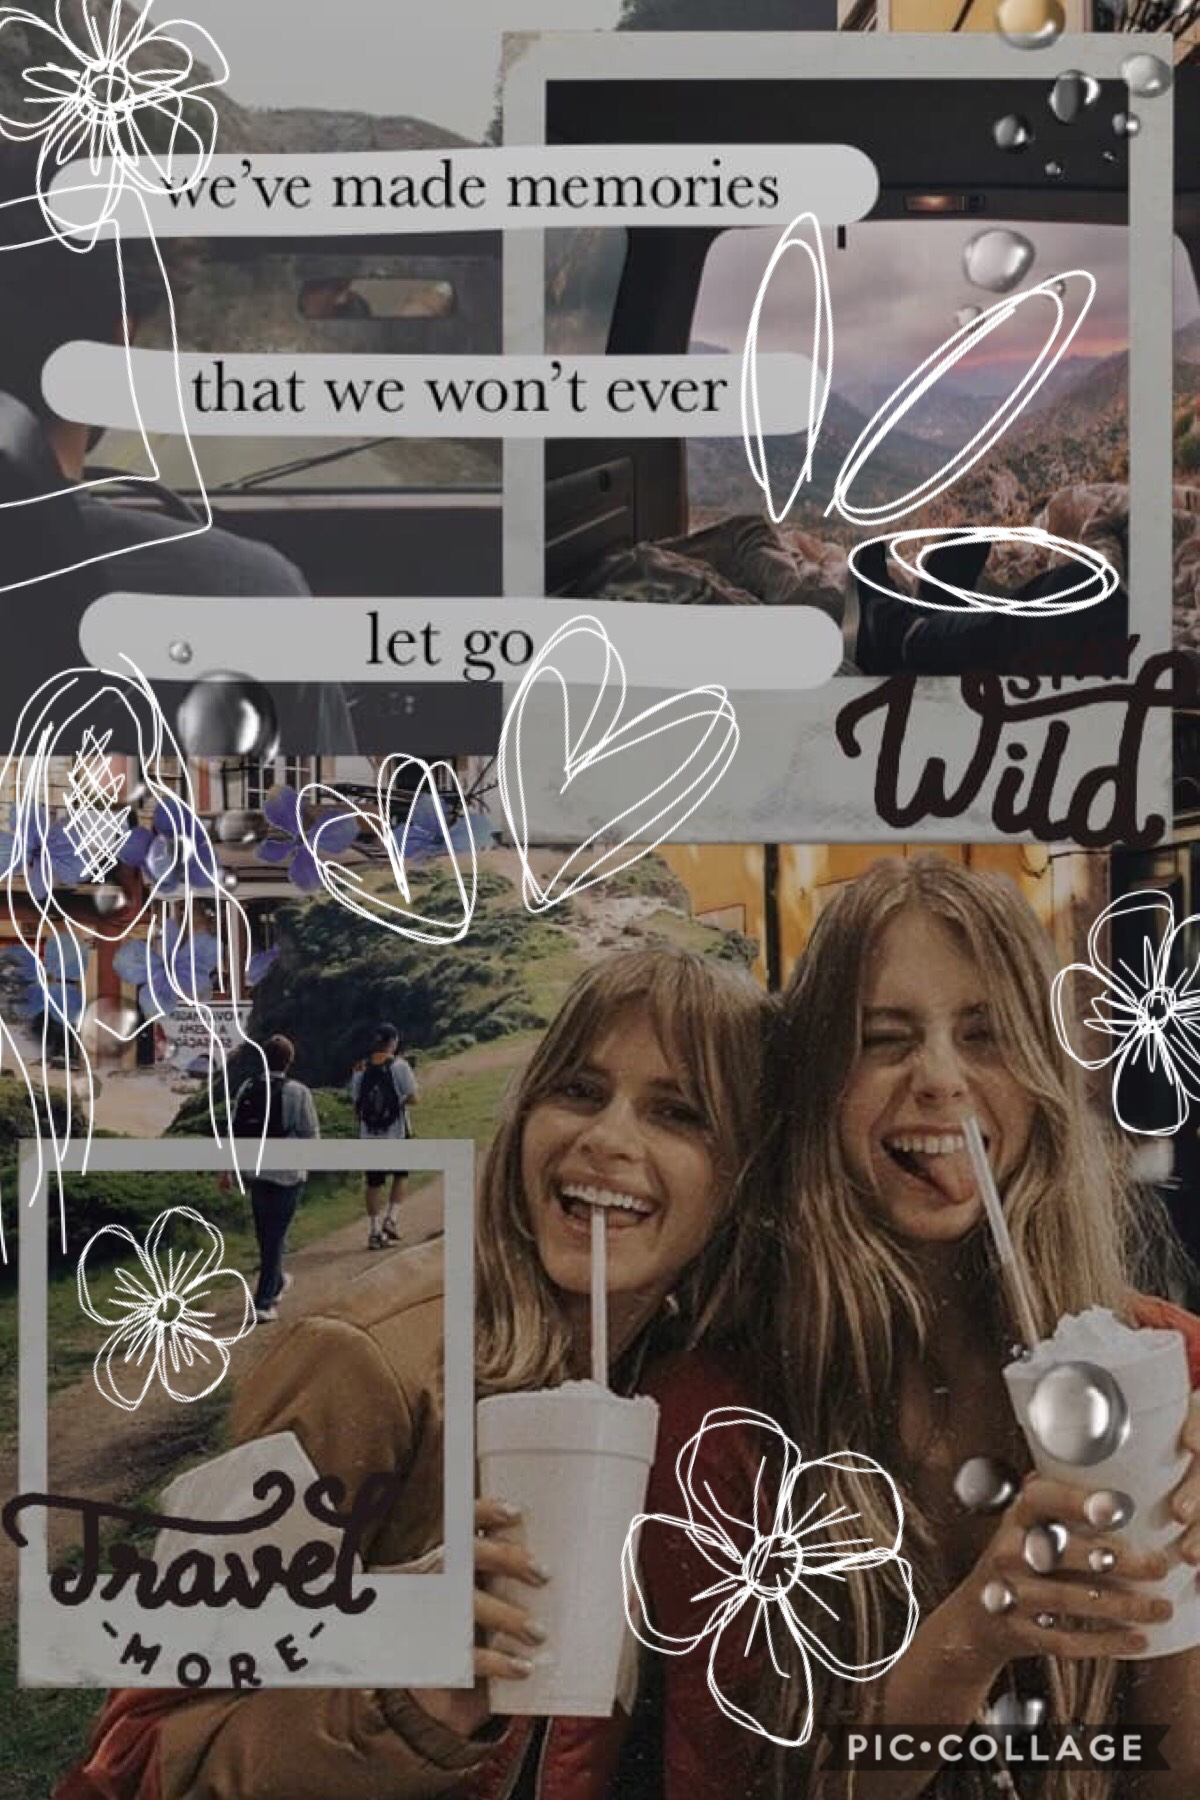 tap hello only one more week of school and then i am officially in high school 😱 Anyways, QOTD: What do you like most about pic collage? AOTD: for me, pic collage is all about expression and creativity